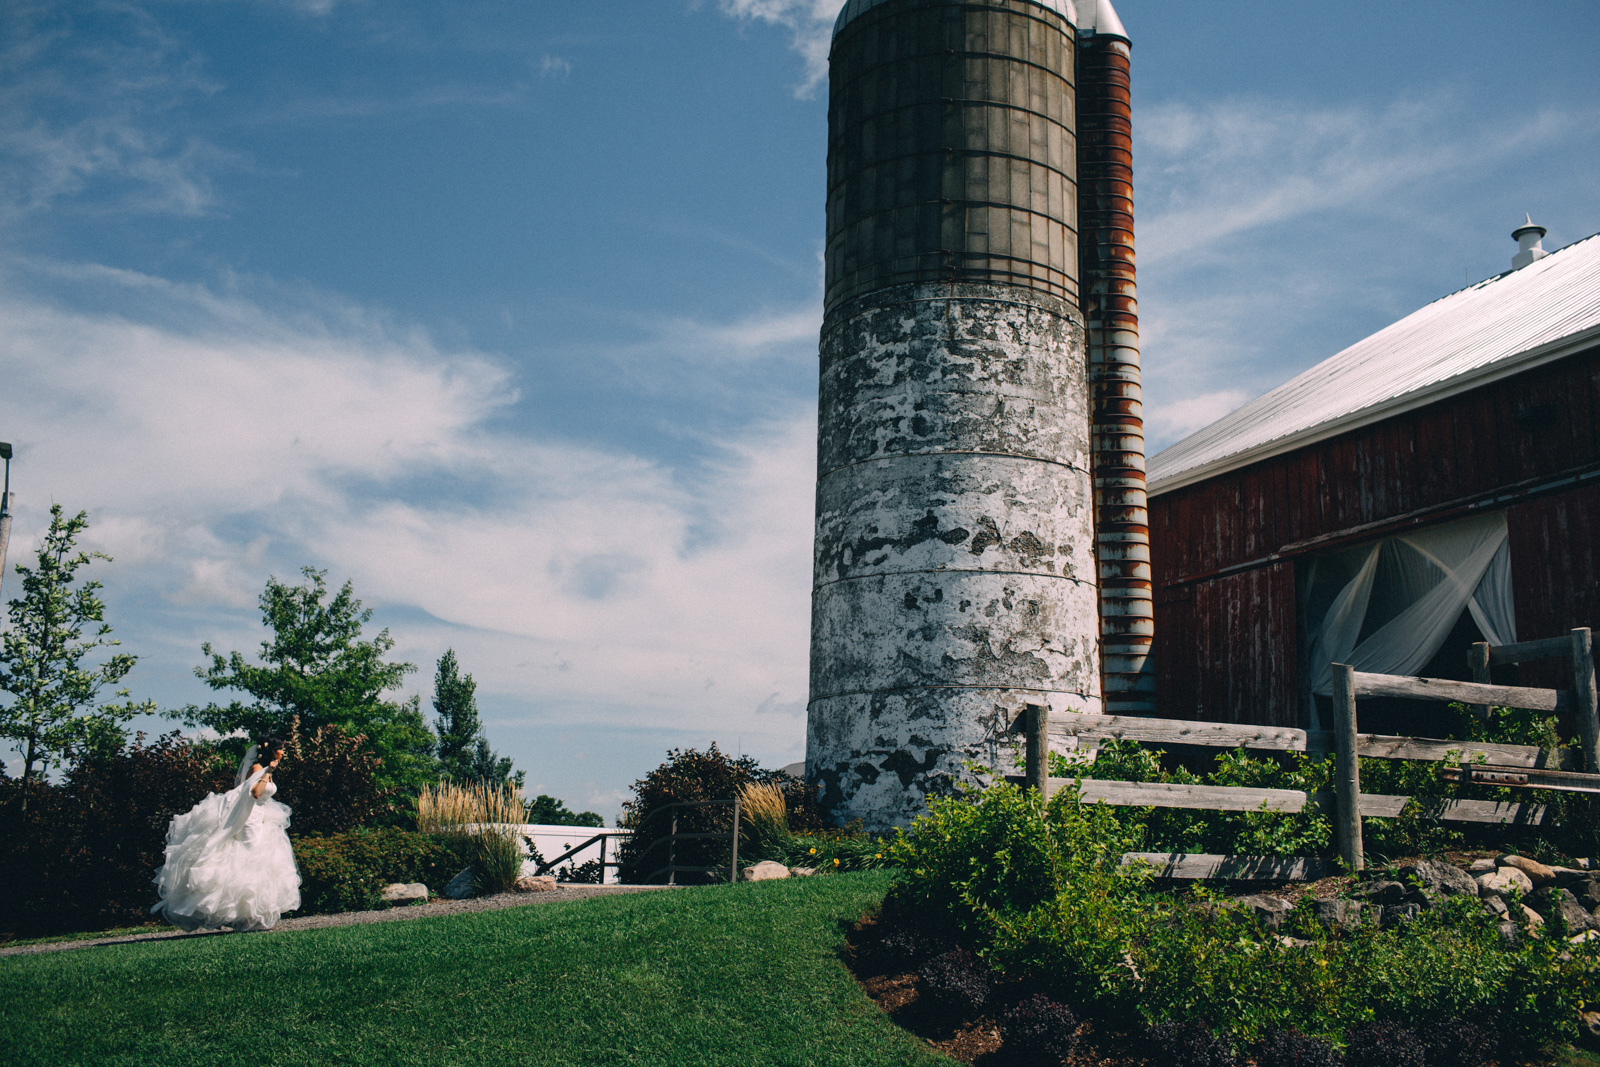 cambium-farms-wedding-photography-by-sam-wong-of-artanis-collective_18